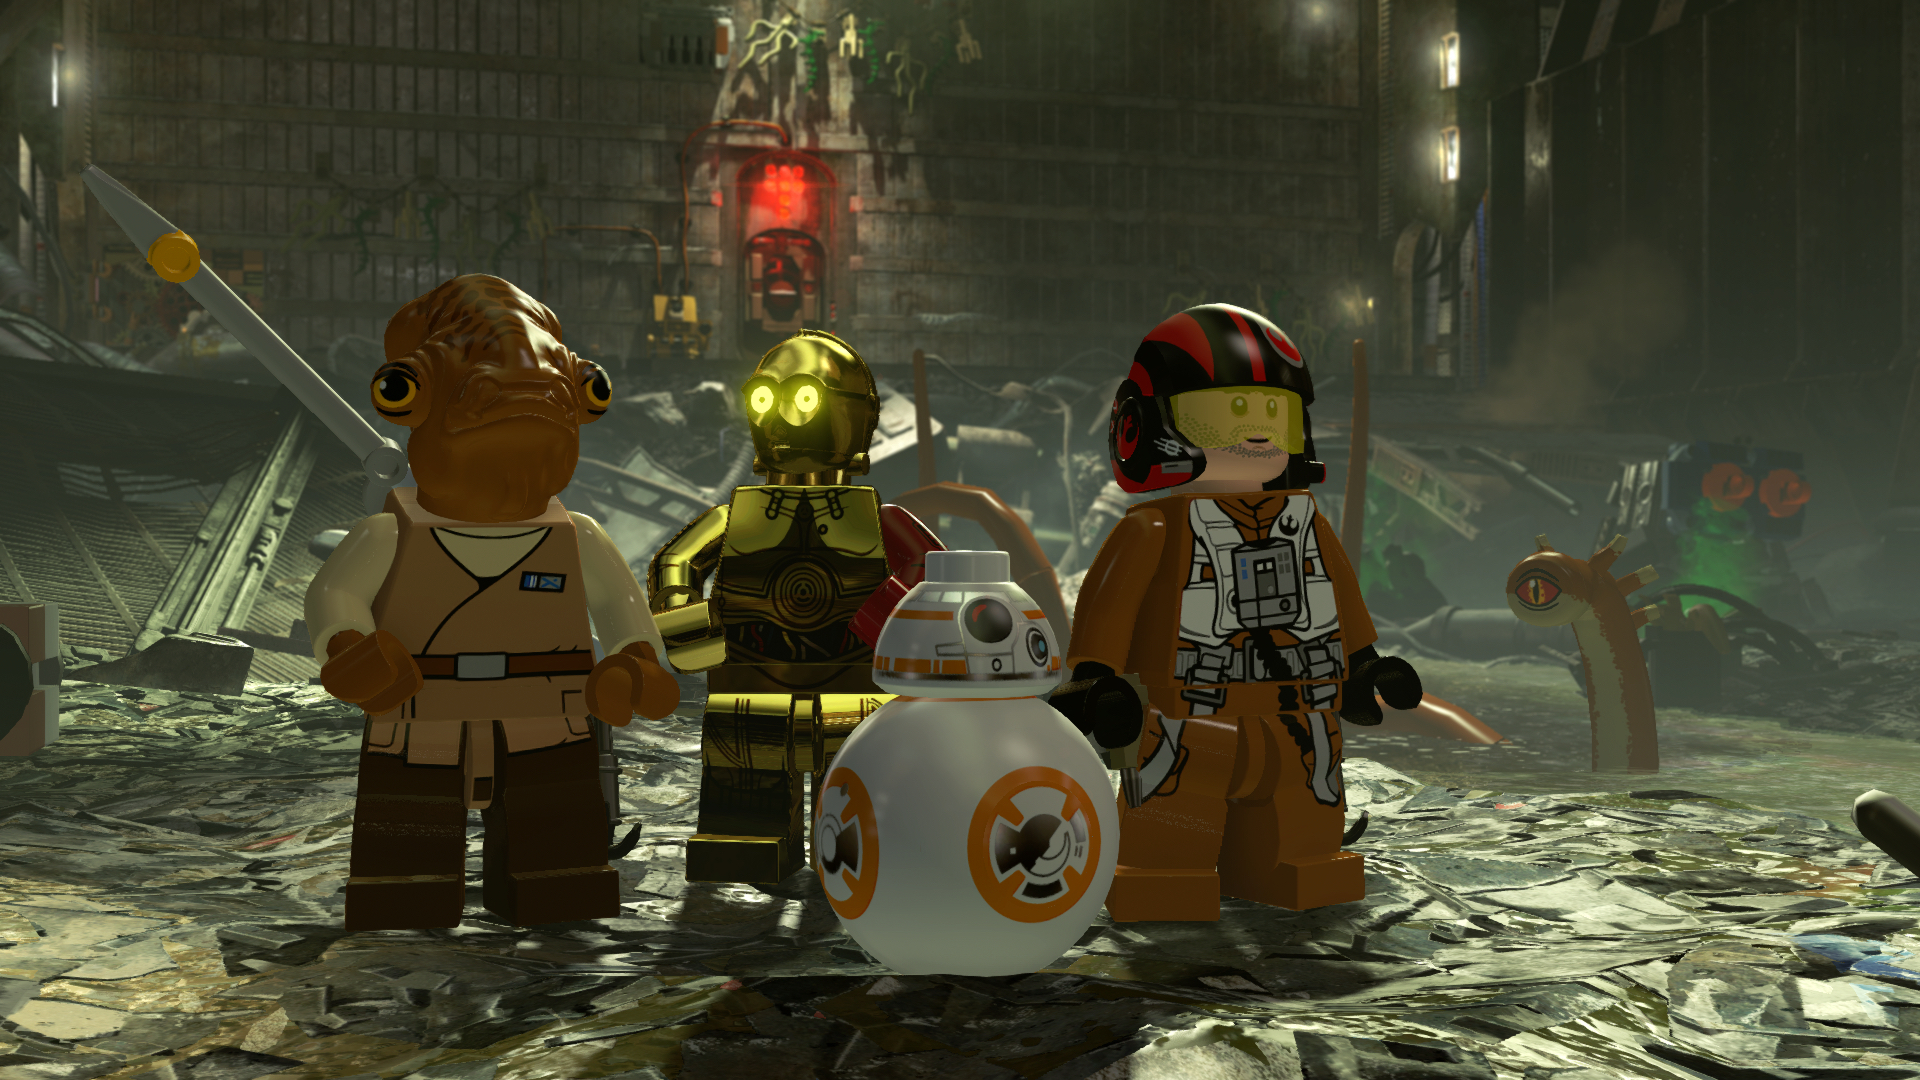 Lego Star Wars The Force Awakens Has Just Enough Comedy To Get